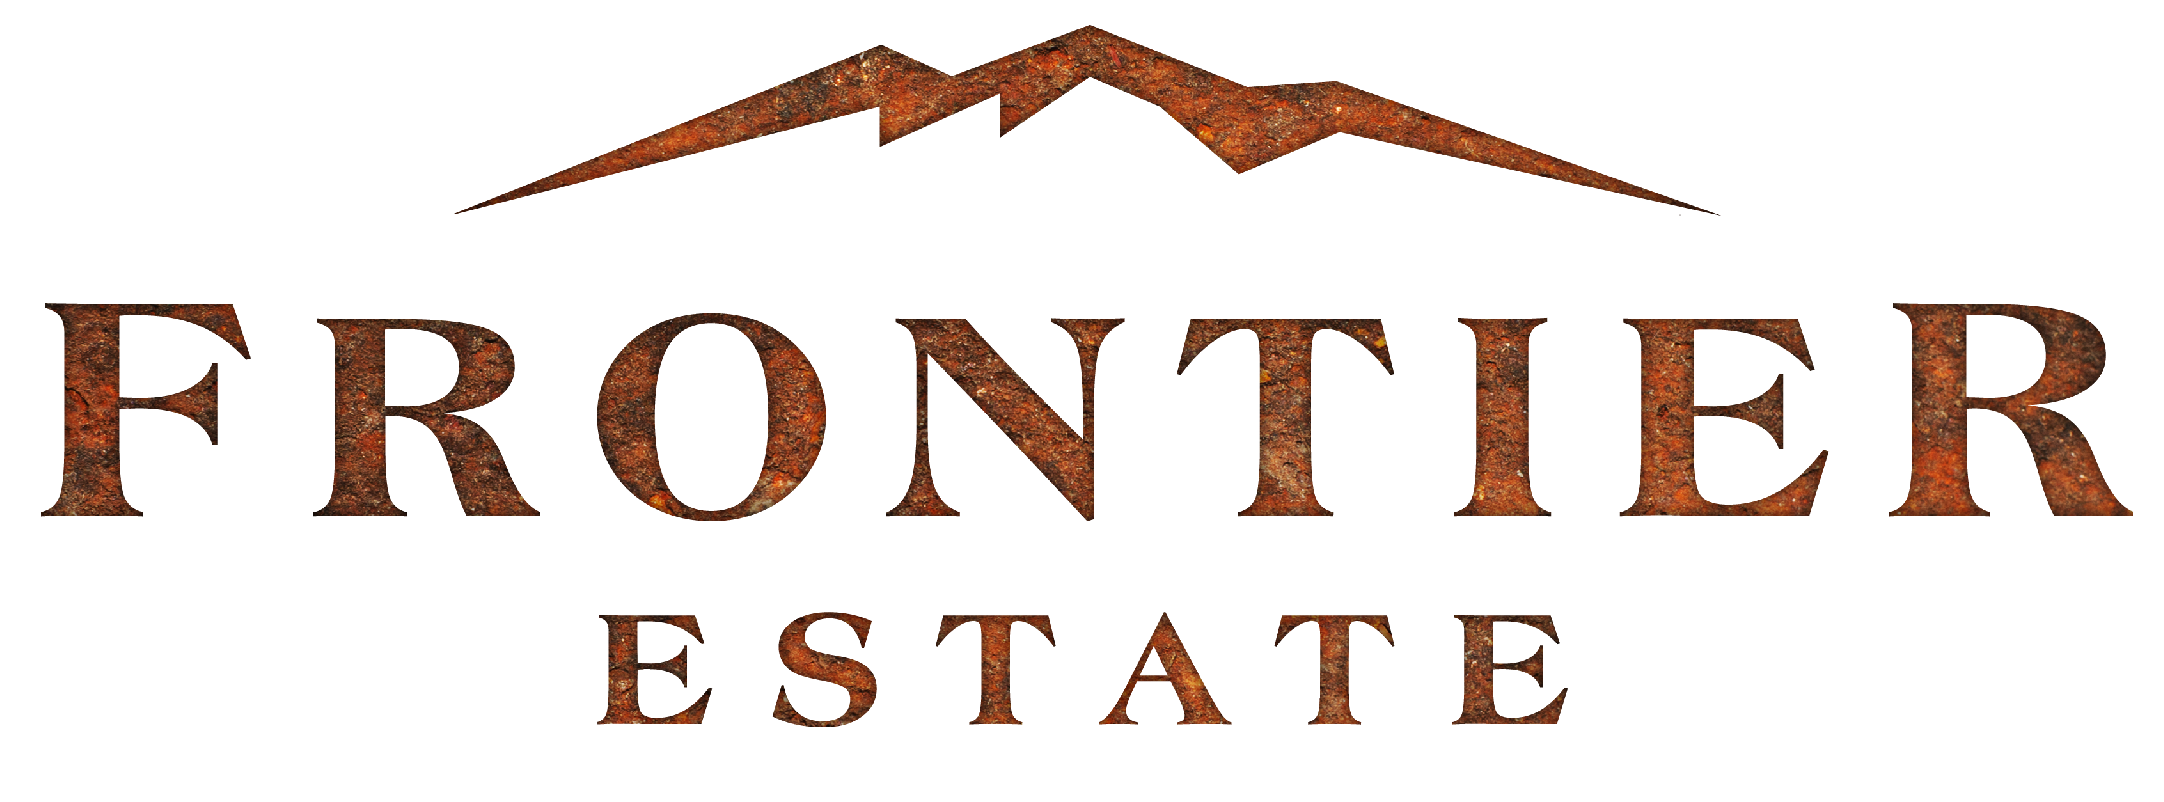 Frontier Estate: Residential Subdivision